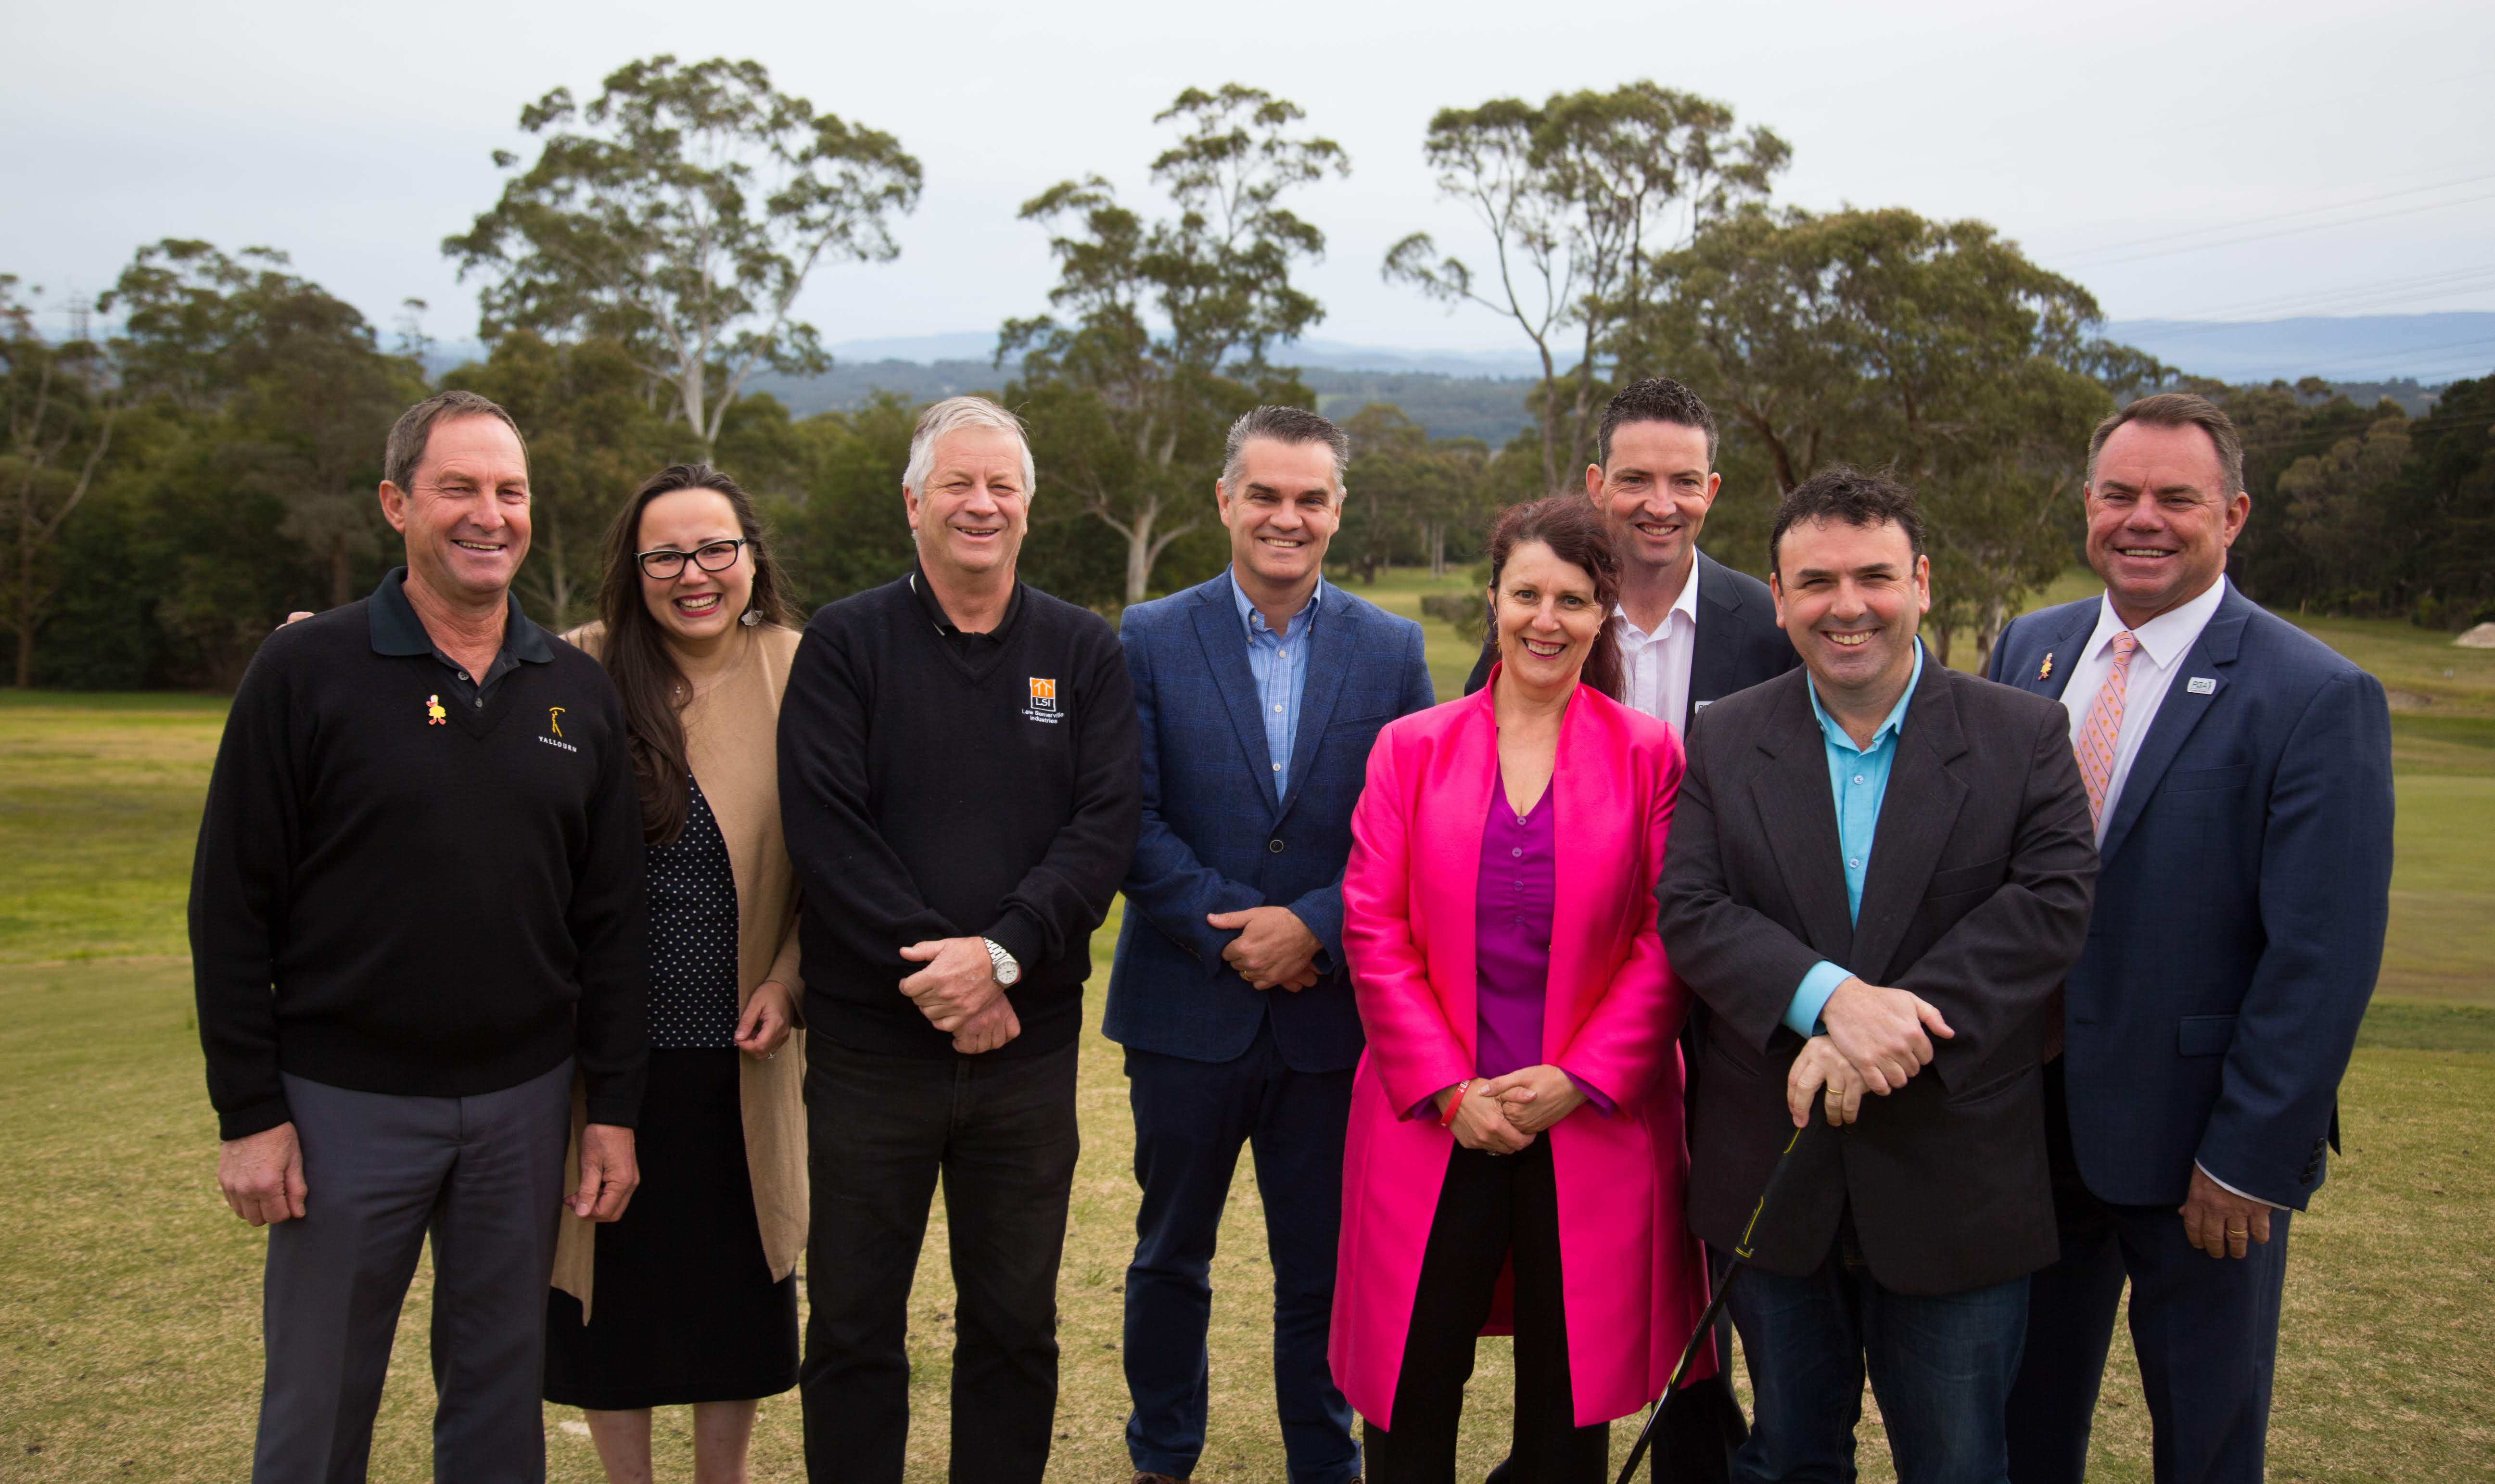 Yallourn Golf Club Vice President Peter Brown, Labor Upper House Member for Eastern Victoria Harriet Shing MP, Latrobe City Councillor Brad Law, Labor candidate for Morwell Mark Richards, Latrob